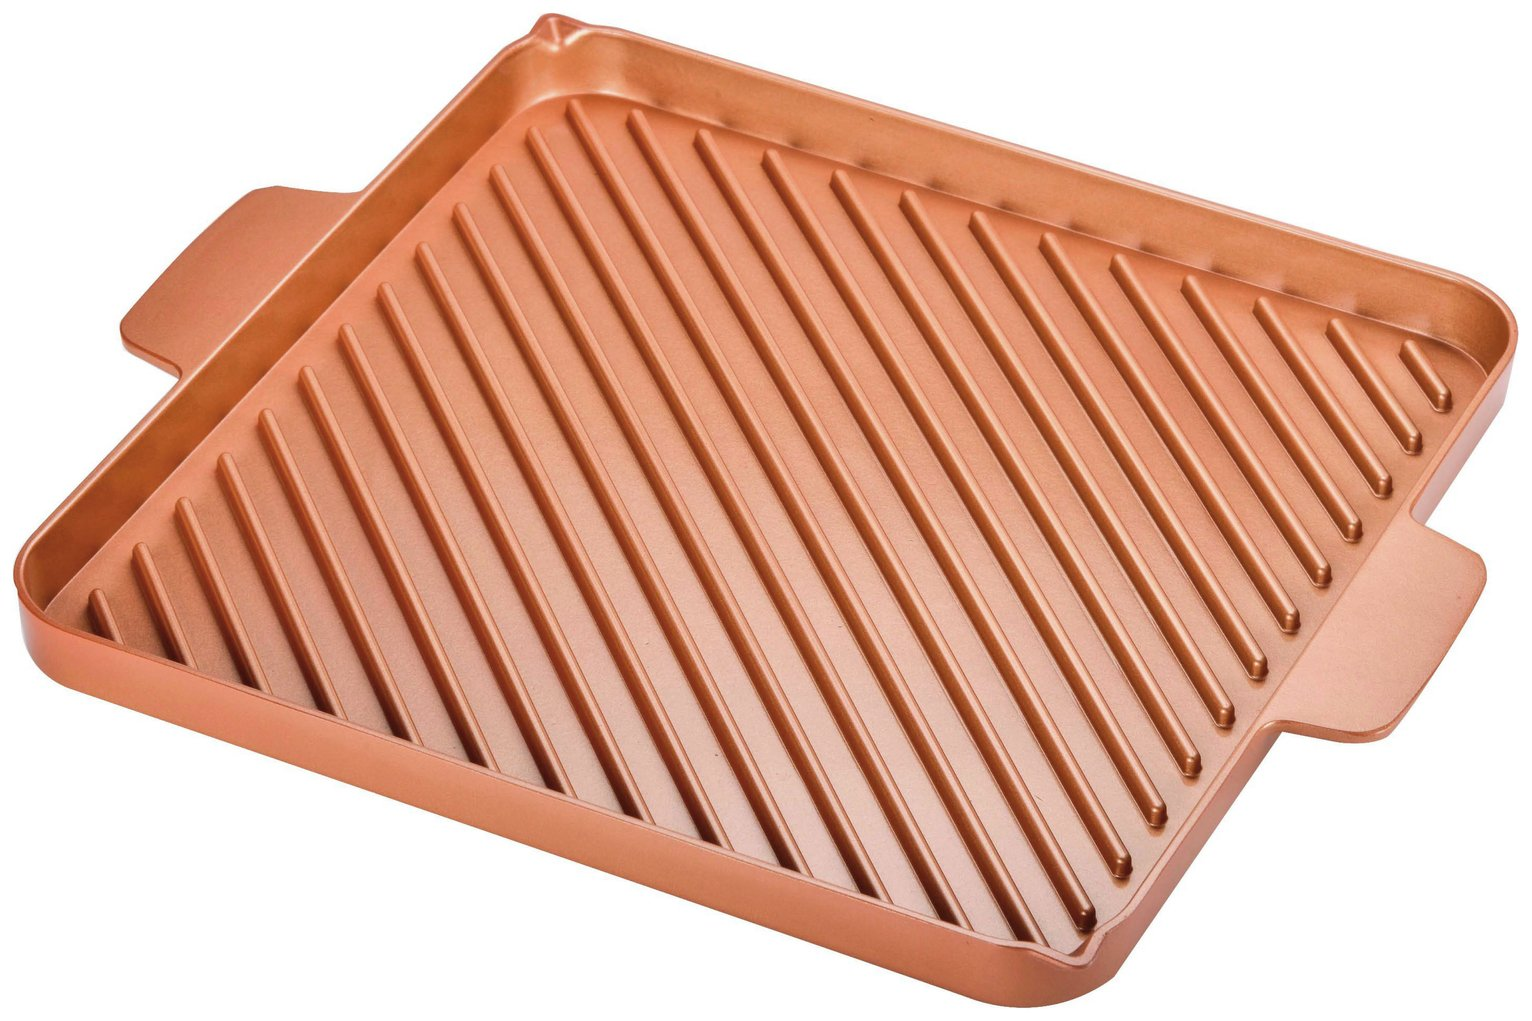 Image of Copper Chef 30cm Griddle Pan